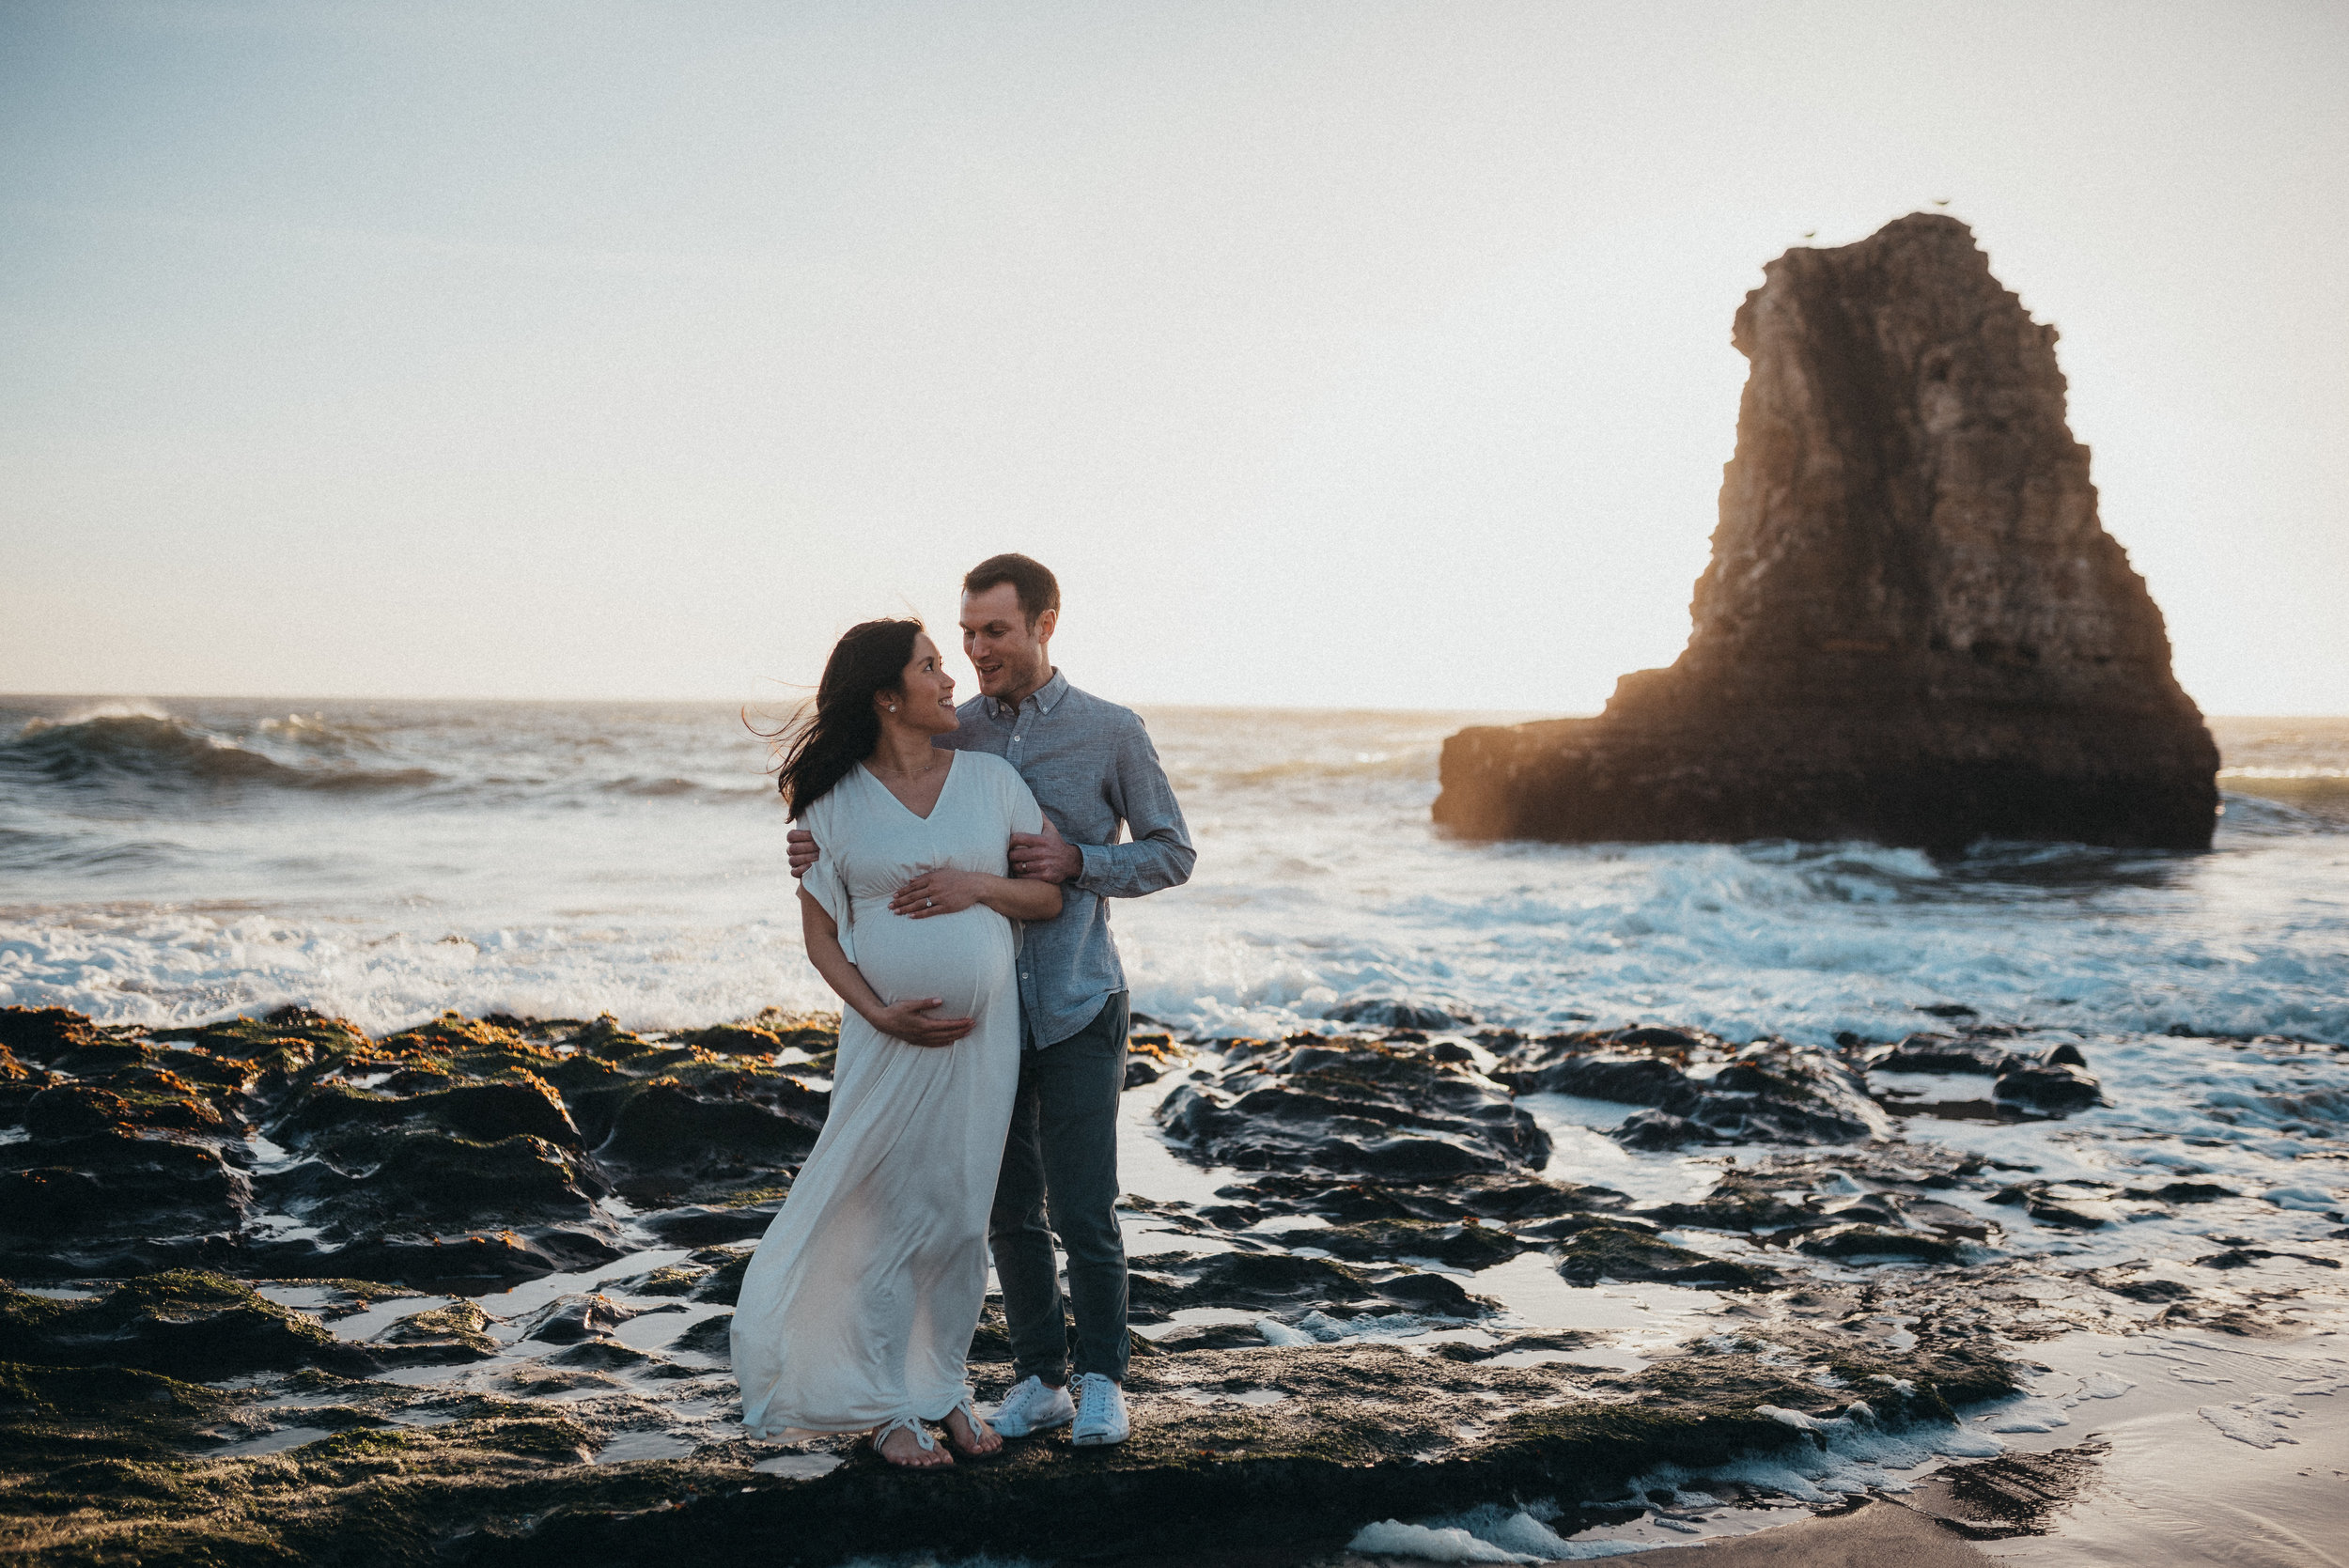 Lifestyle maternity photography in Colorado and California